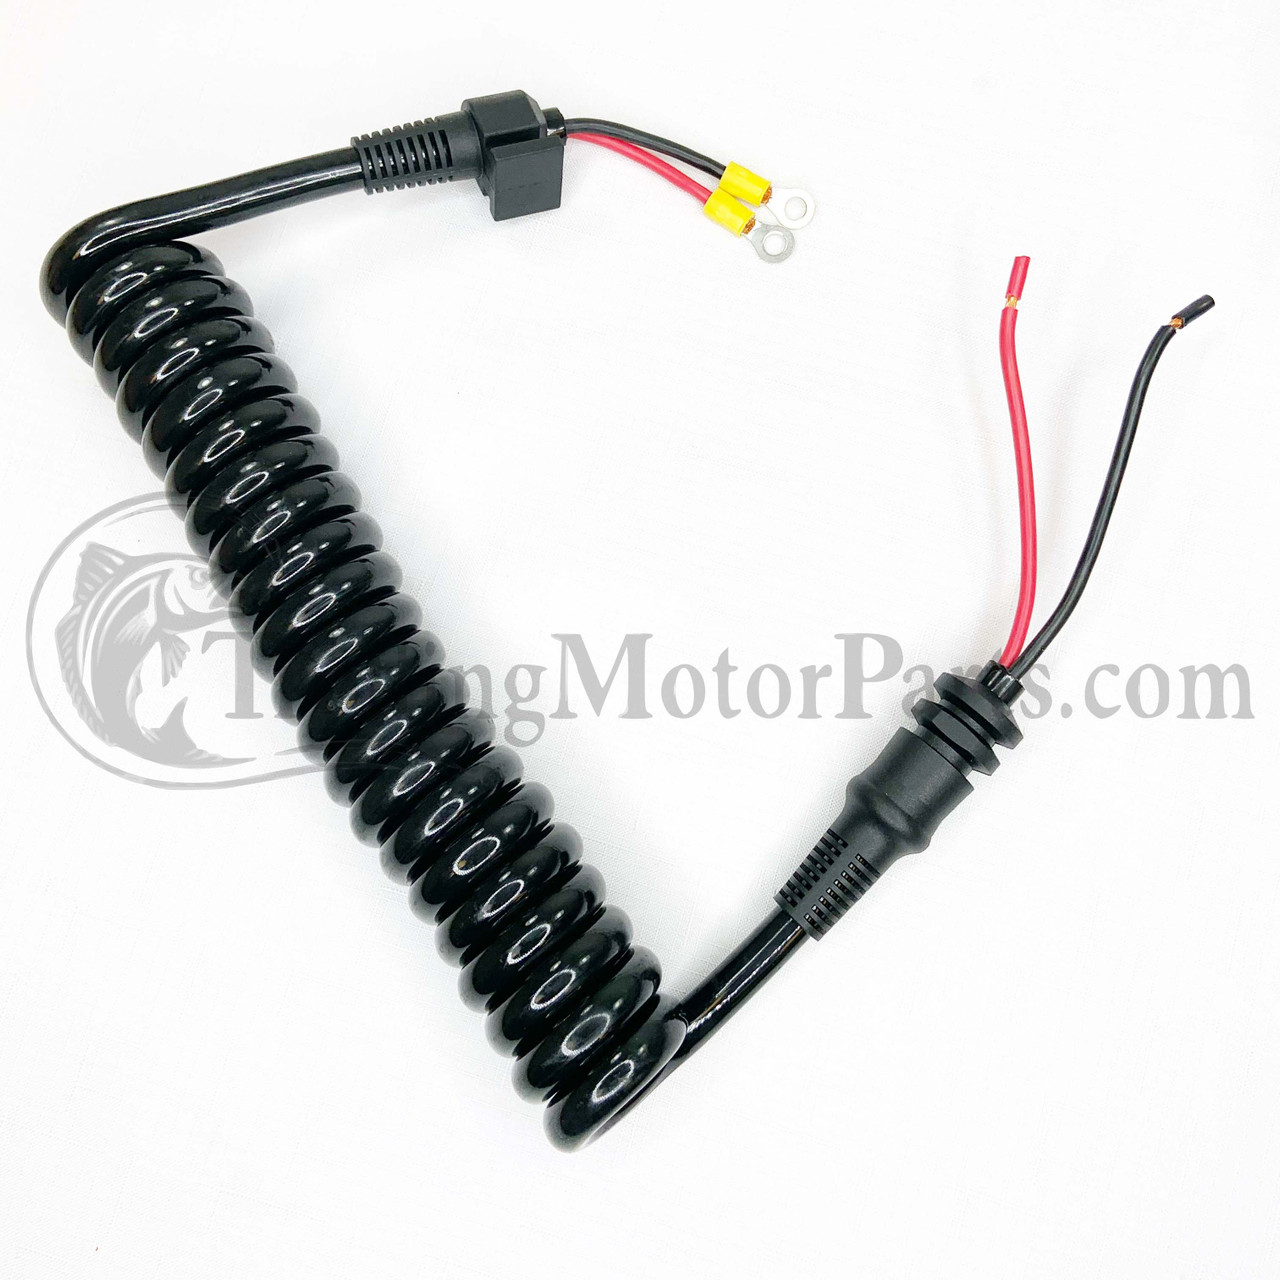 Motor Guide Coil Cord Assembly (Long) (Xi3/Xi5